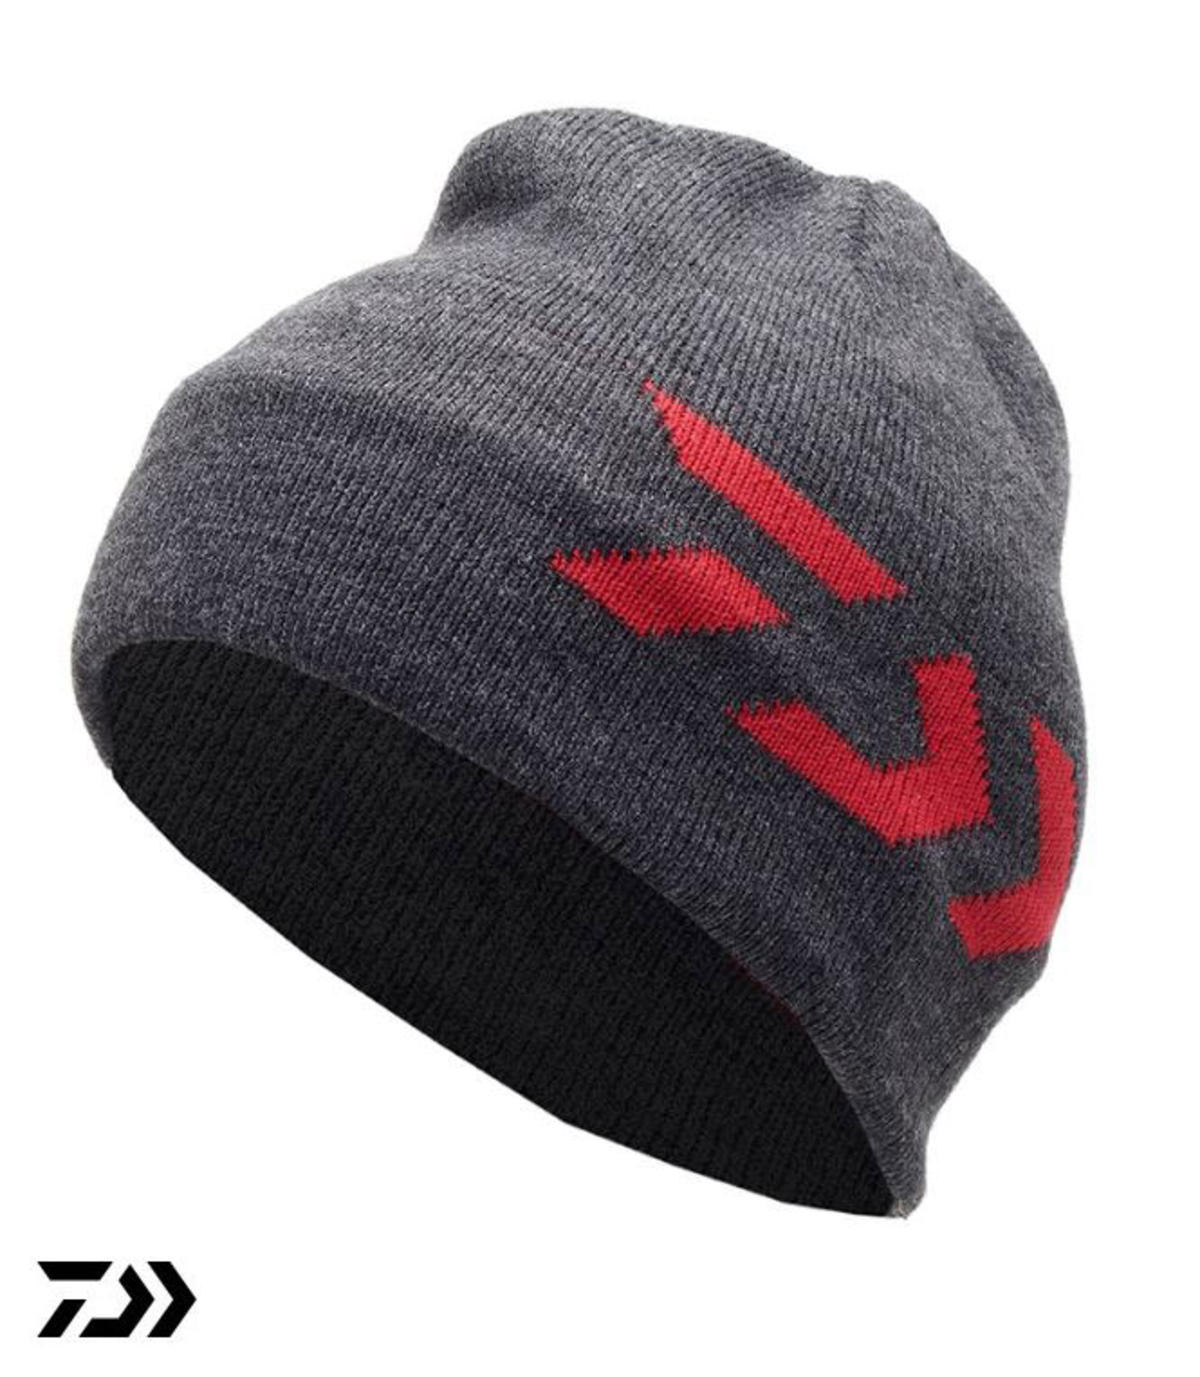 New Daiwa Thermal Beanie Hat - Grey - DVTBH1